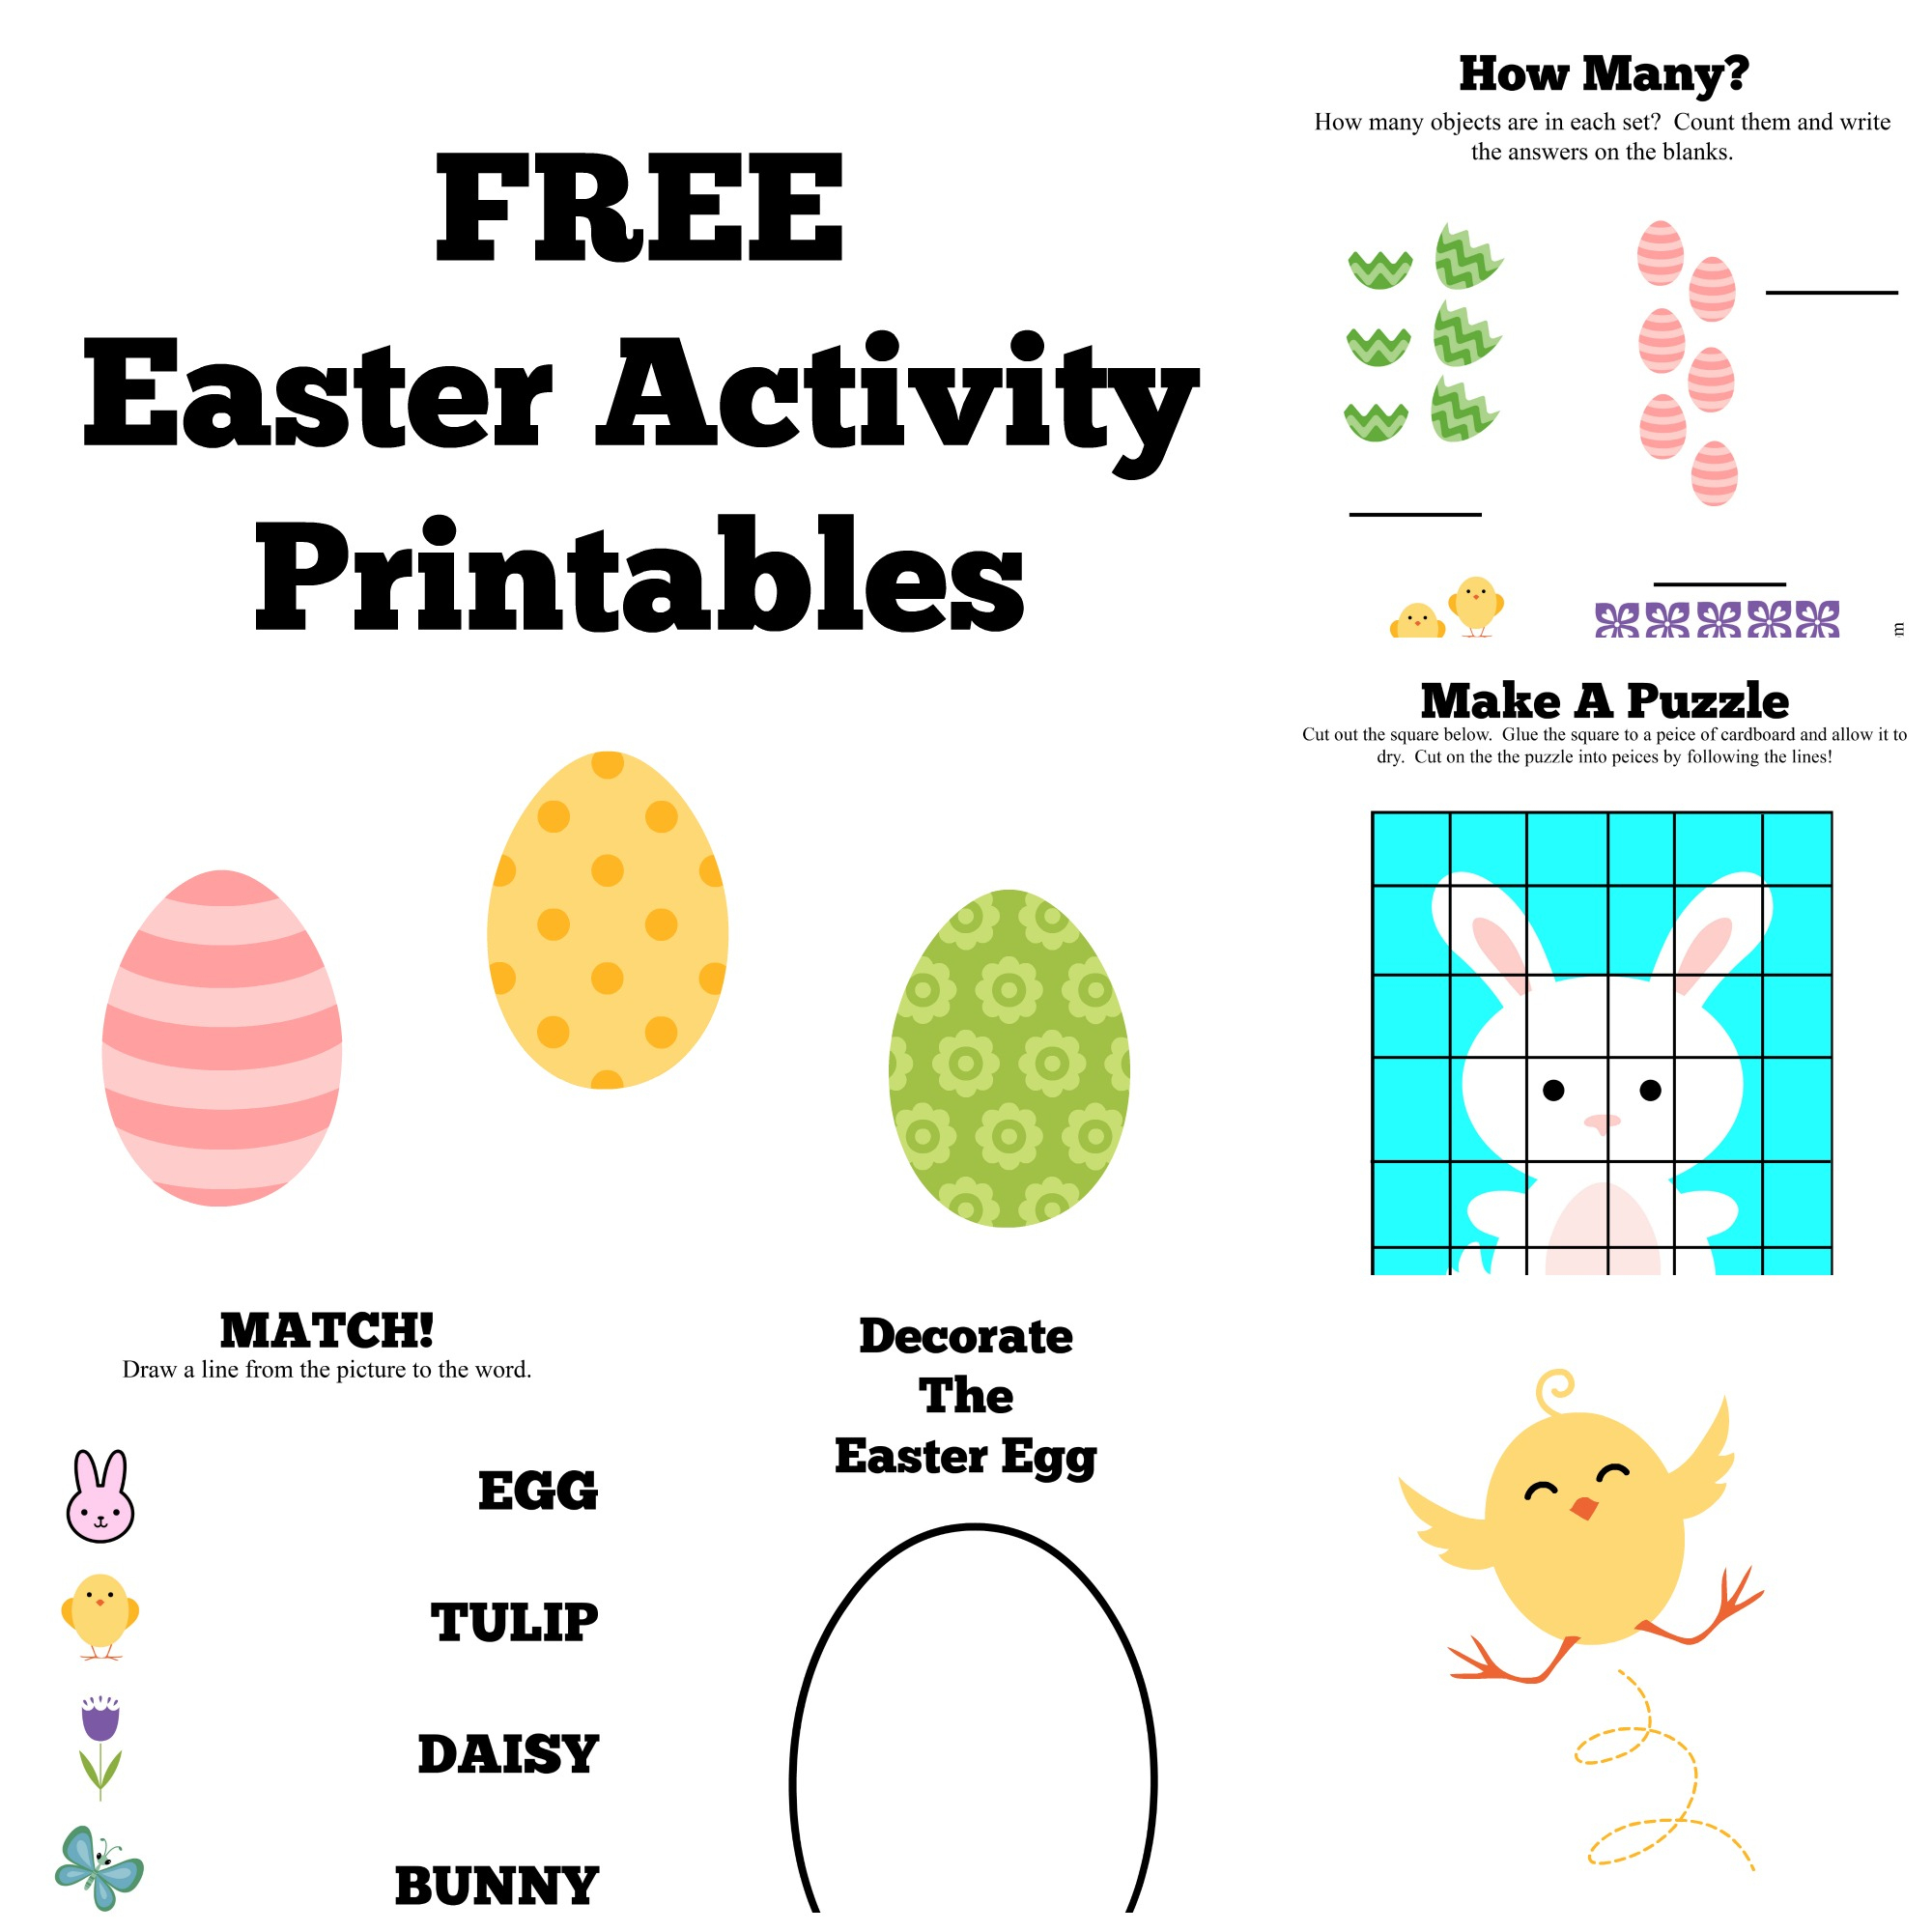 Free Easter Activity Printables {Craft & Learn} - - Free Printable Craft Activities